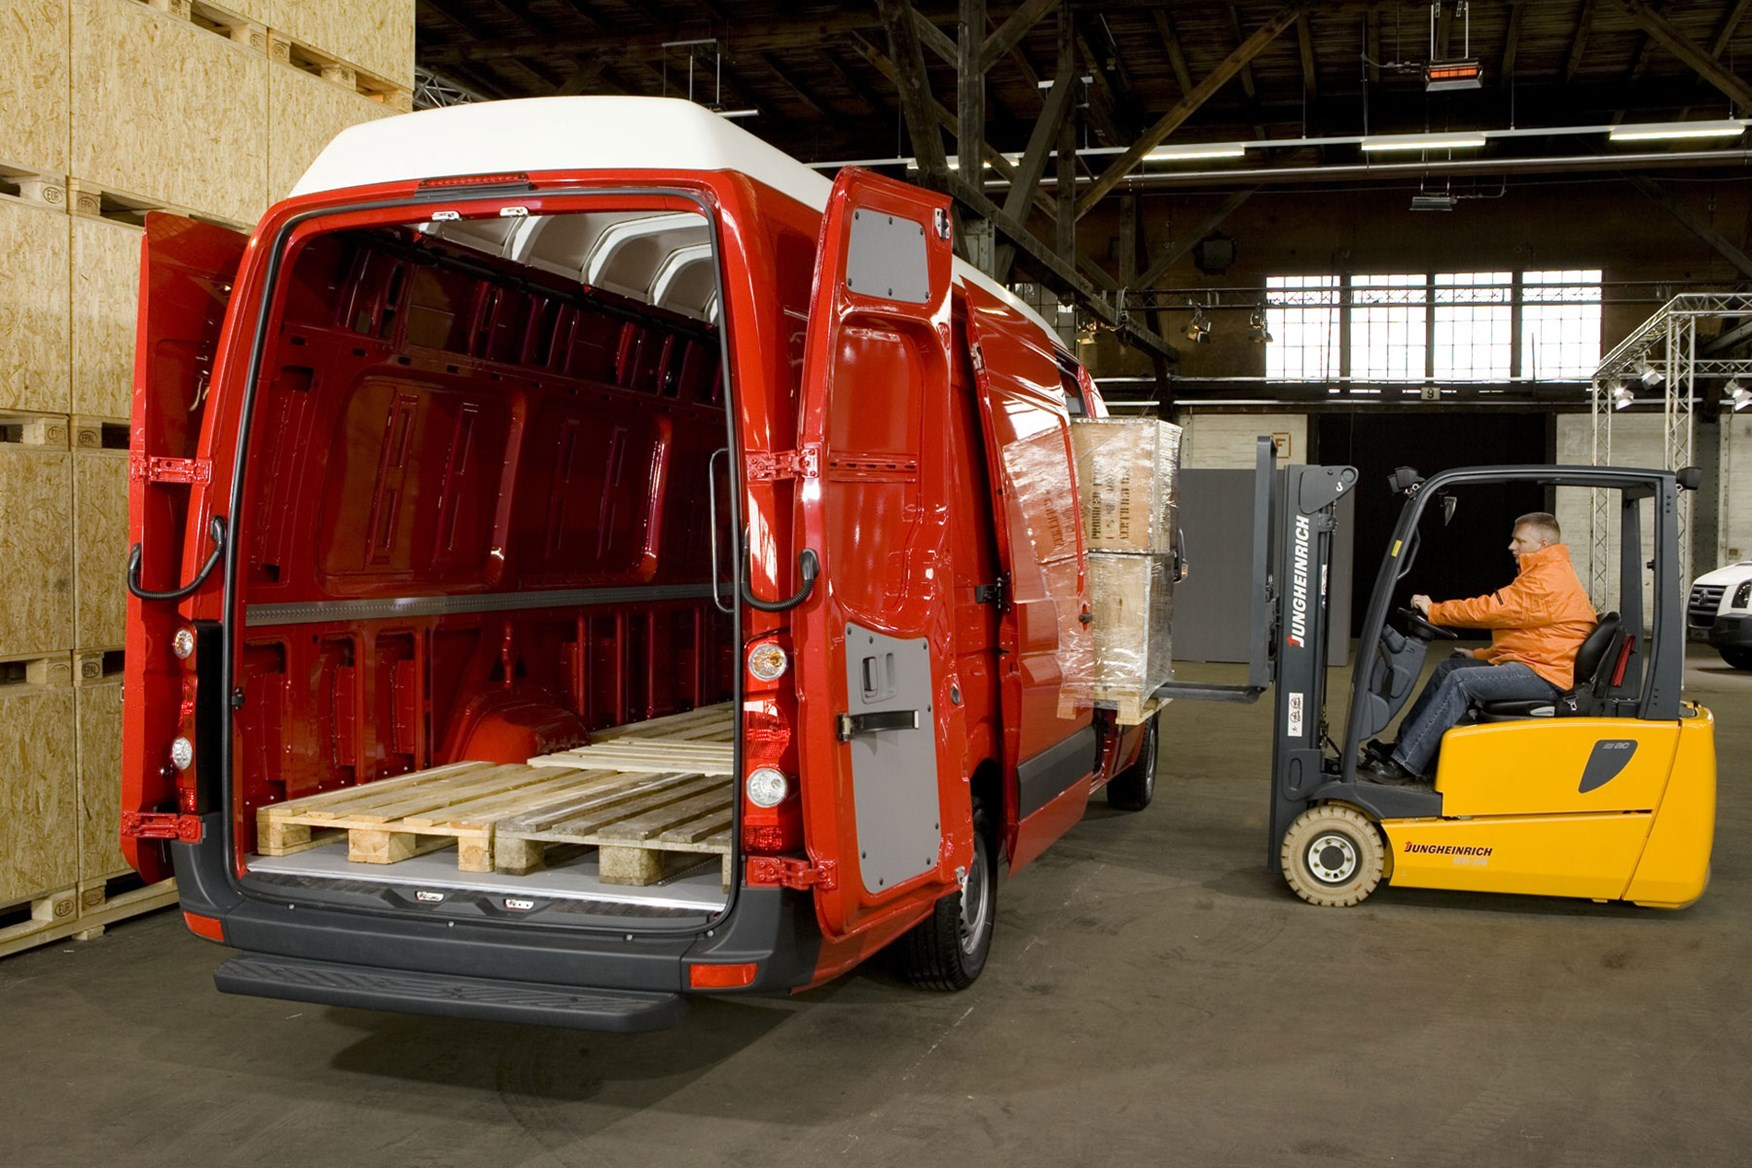 VW Crafter (1996-2003) load area with pallets